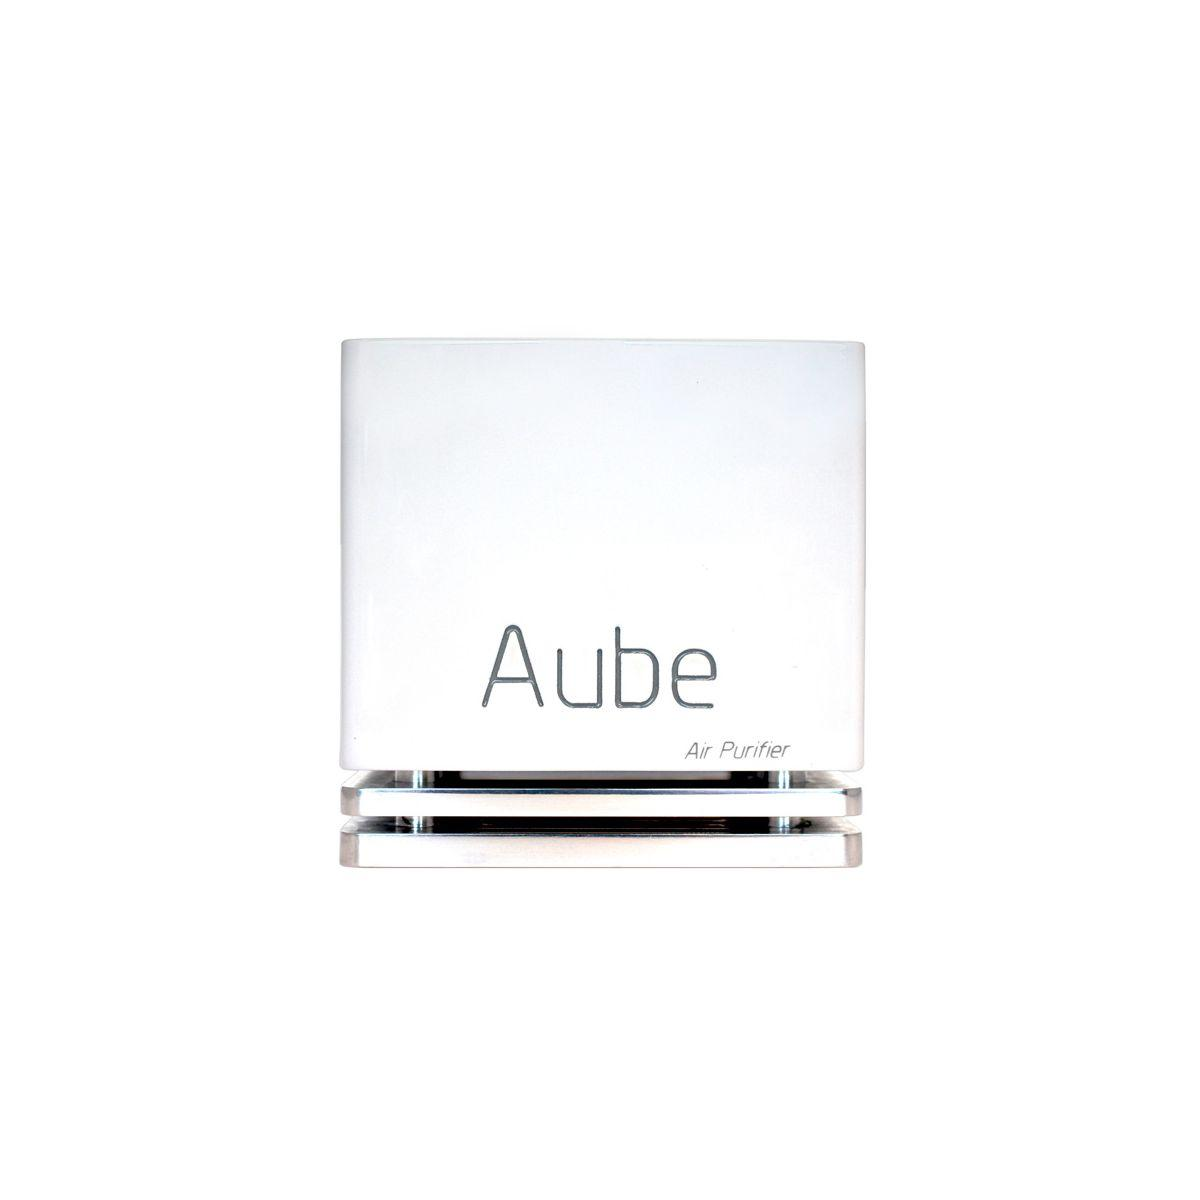 Purificateur d'air aykow aube connect� blanc - 7% de remise imm�diate avec le code : priv7 (photo)